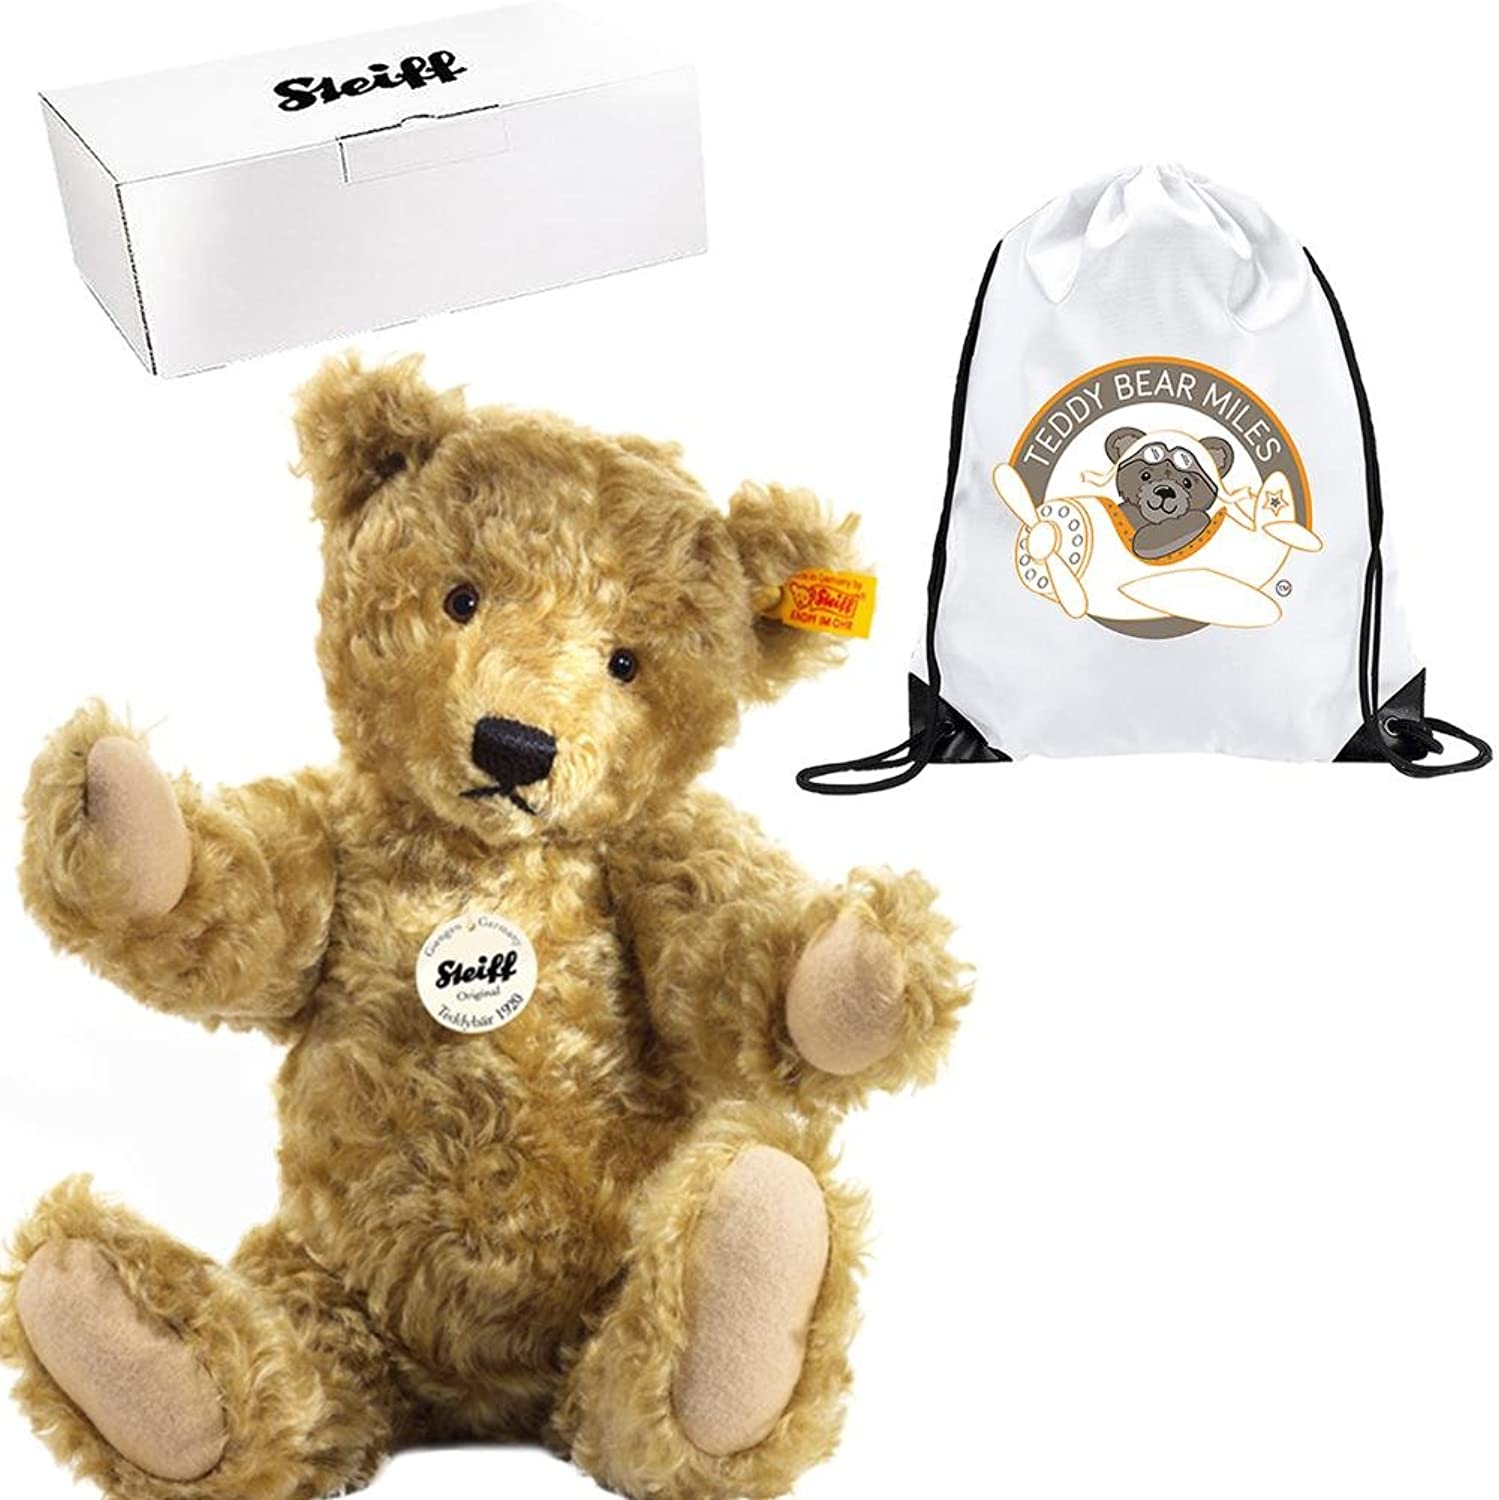 Steiff Classic 1920 Teddy Bear That Special Gift Present For Him or Her